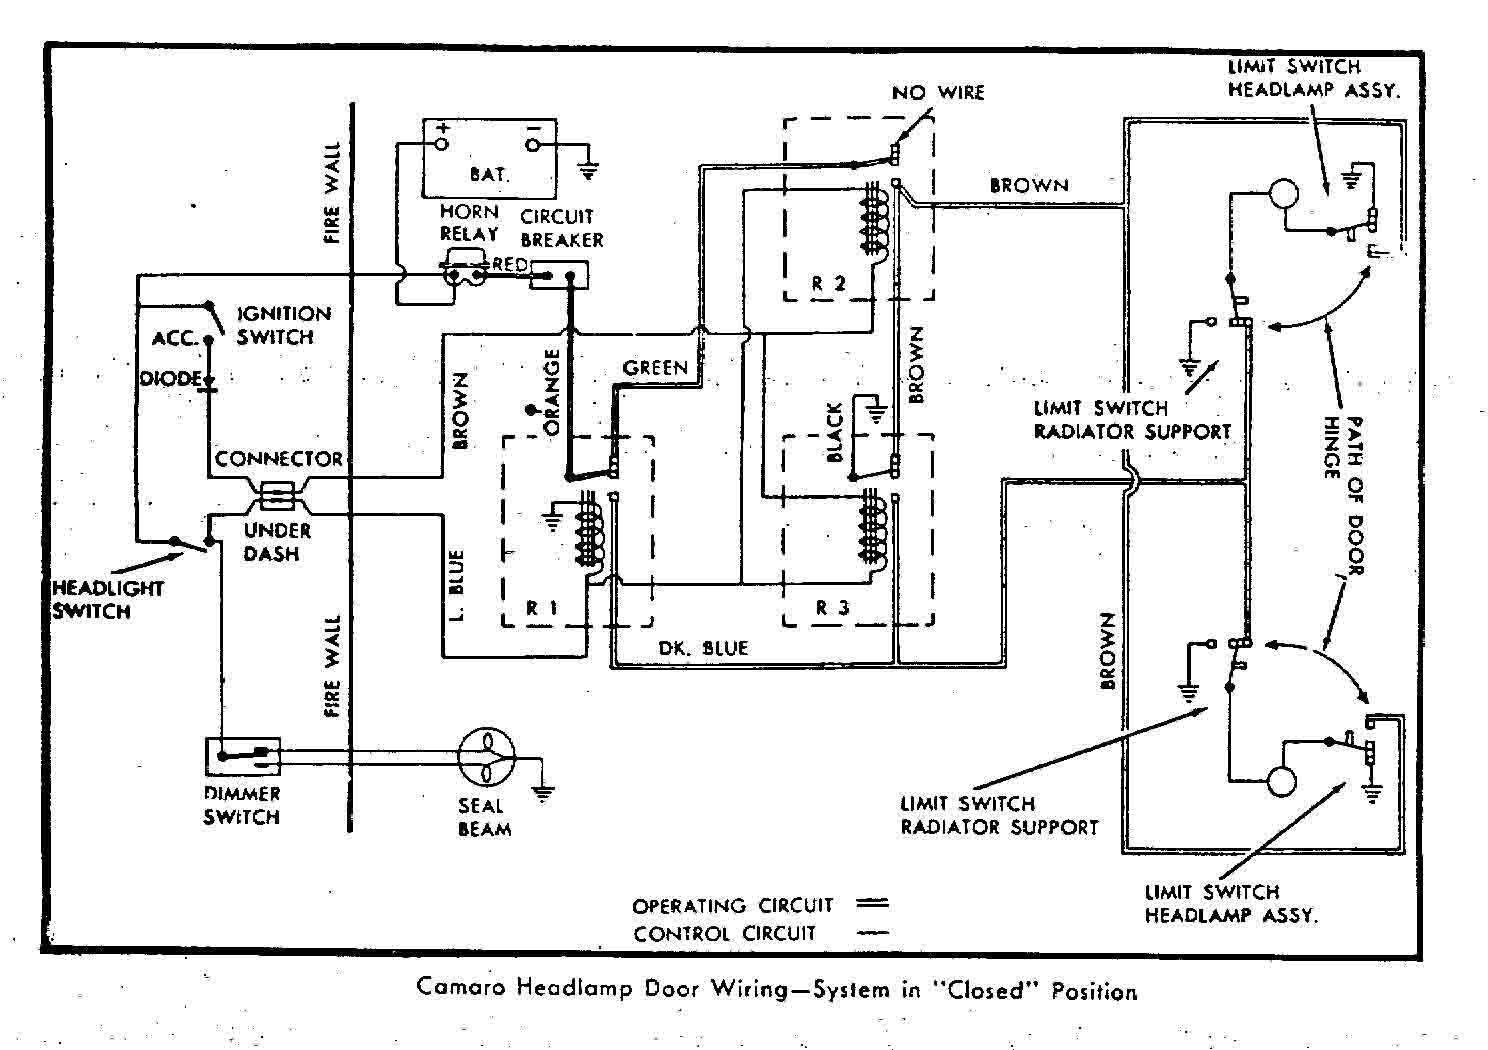 67 camaro engine wiring harness diagram 1967 camaro engine wiring harness diagram